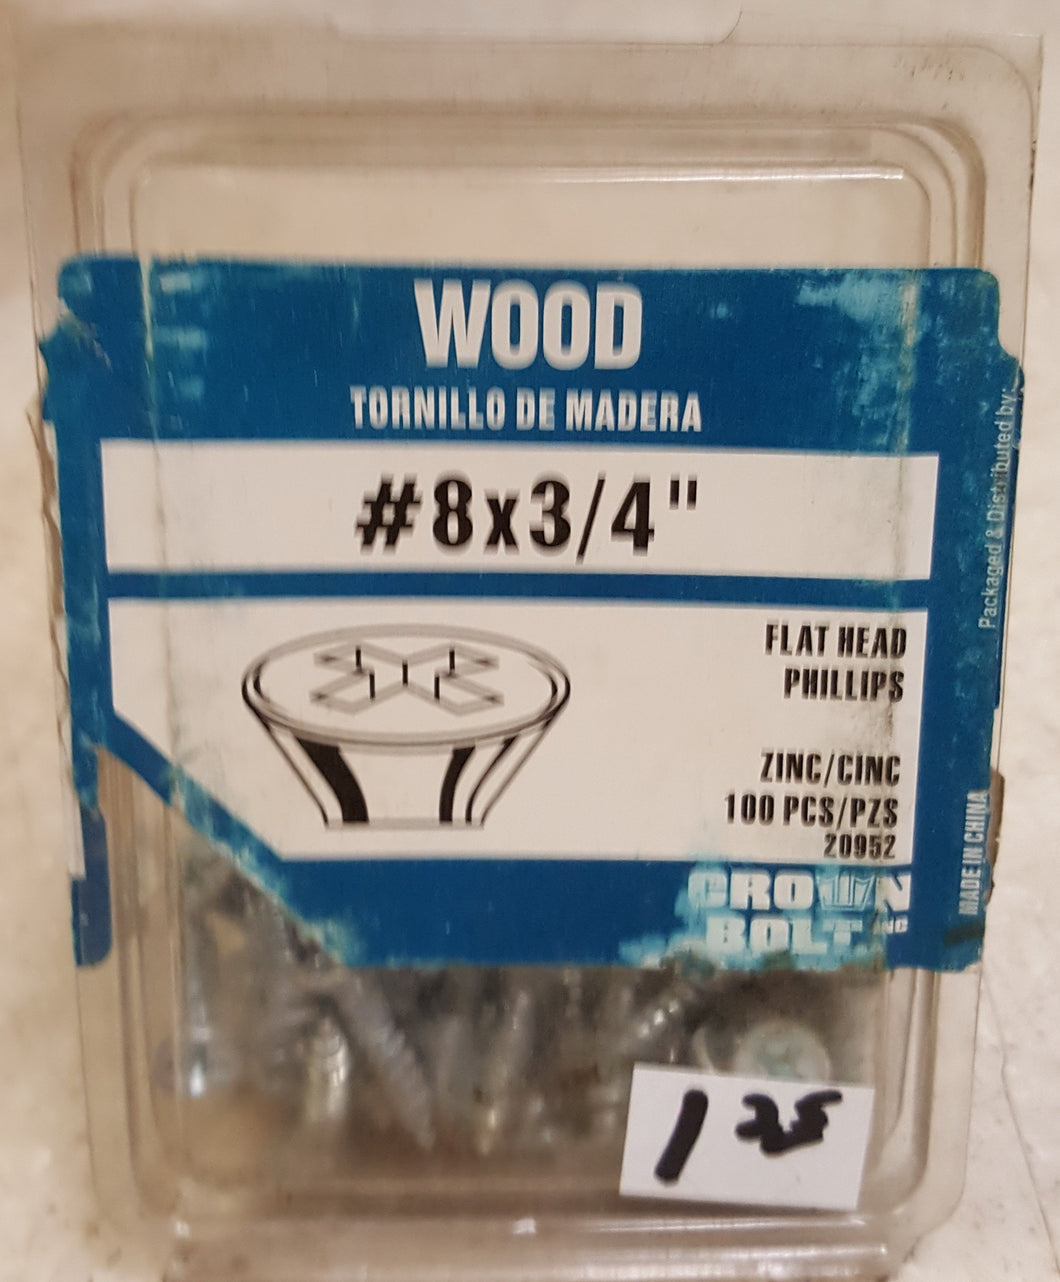 Crown Bolt 20952 #8-3/4